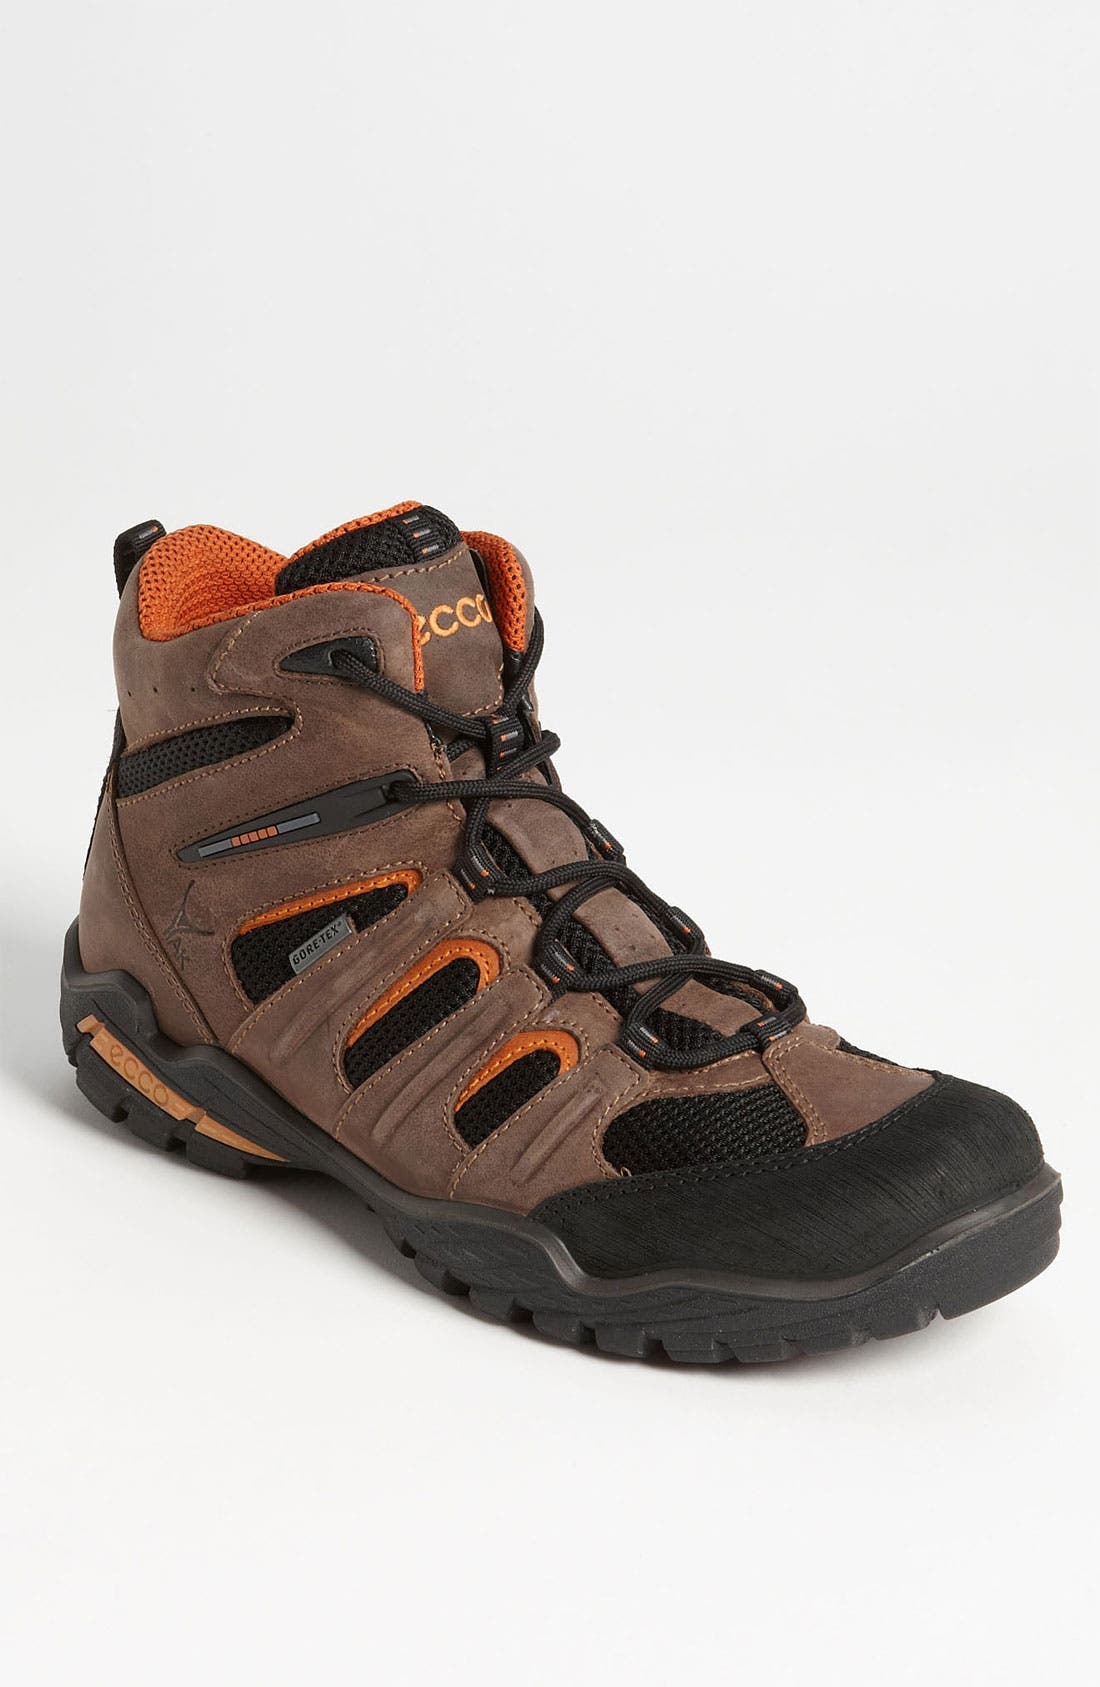 Alternate Image 1 Selected - ECCO 'La Paz' Hiking Boot (Online Only)